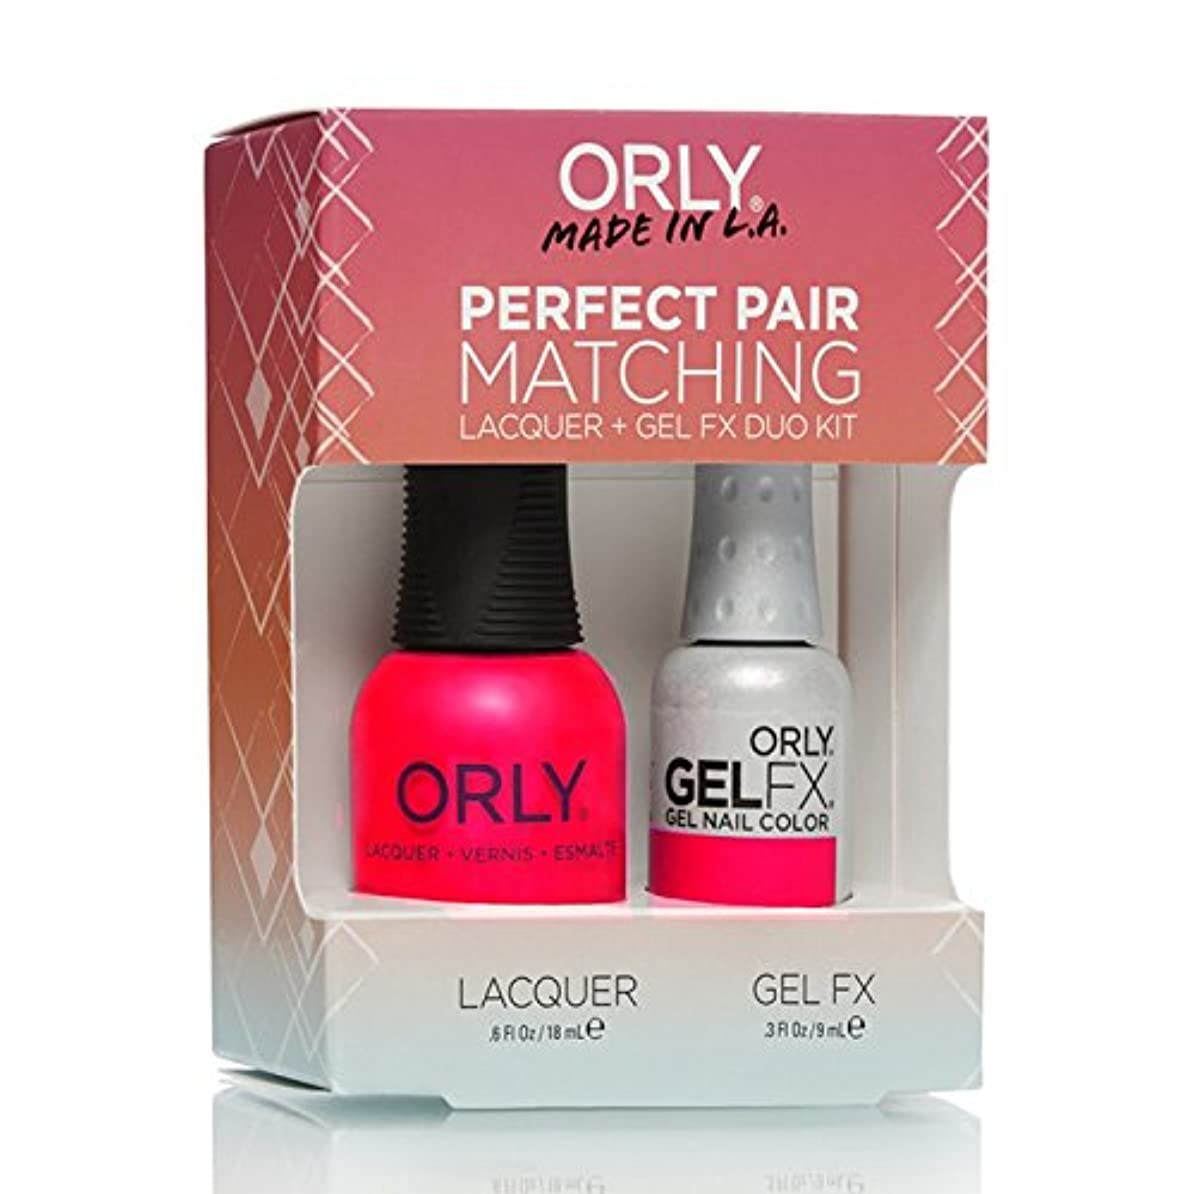 間煩わしいリラックスしたOrly Lacquer + Gel FX - Perfect Pair Matching DUO Kit - Neon Heat